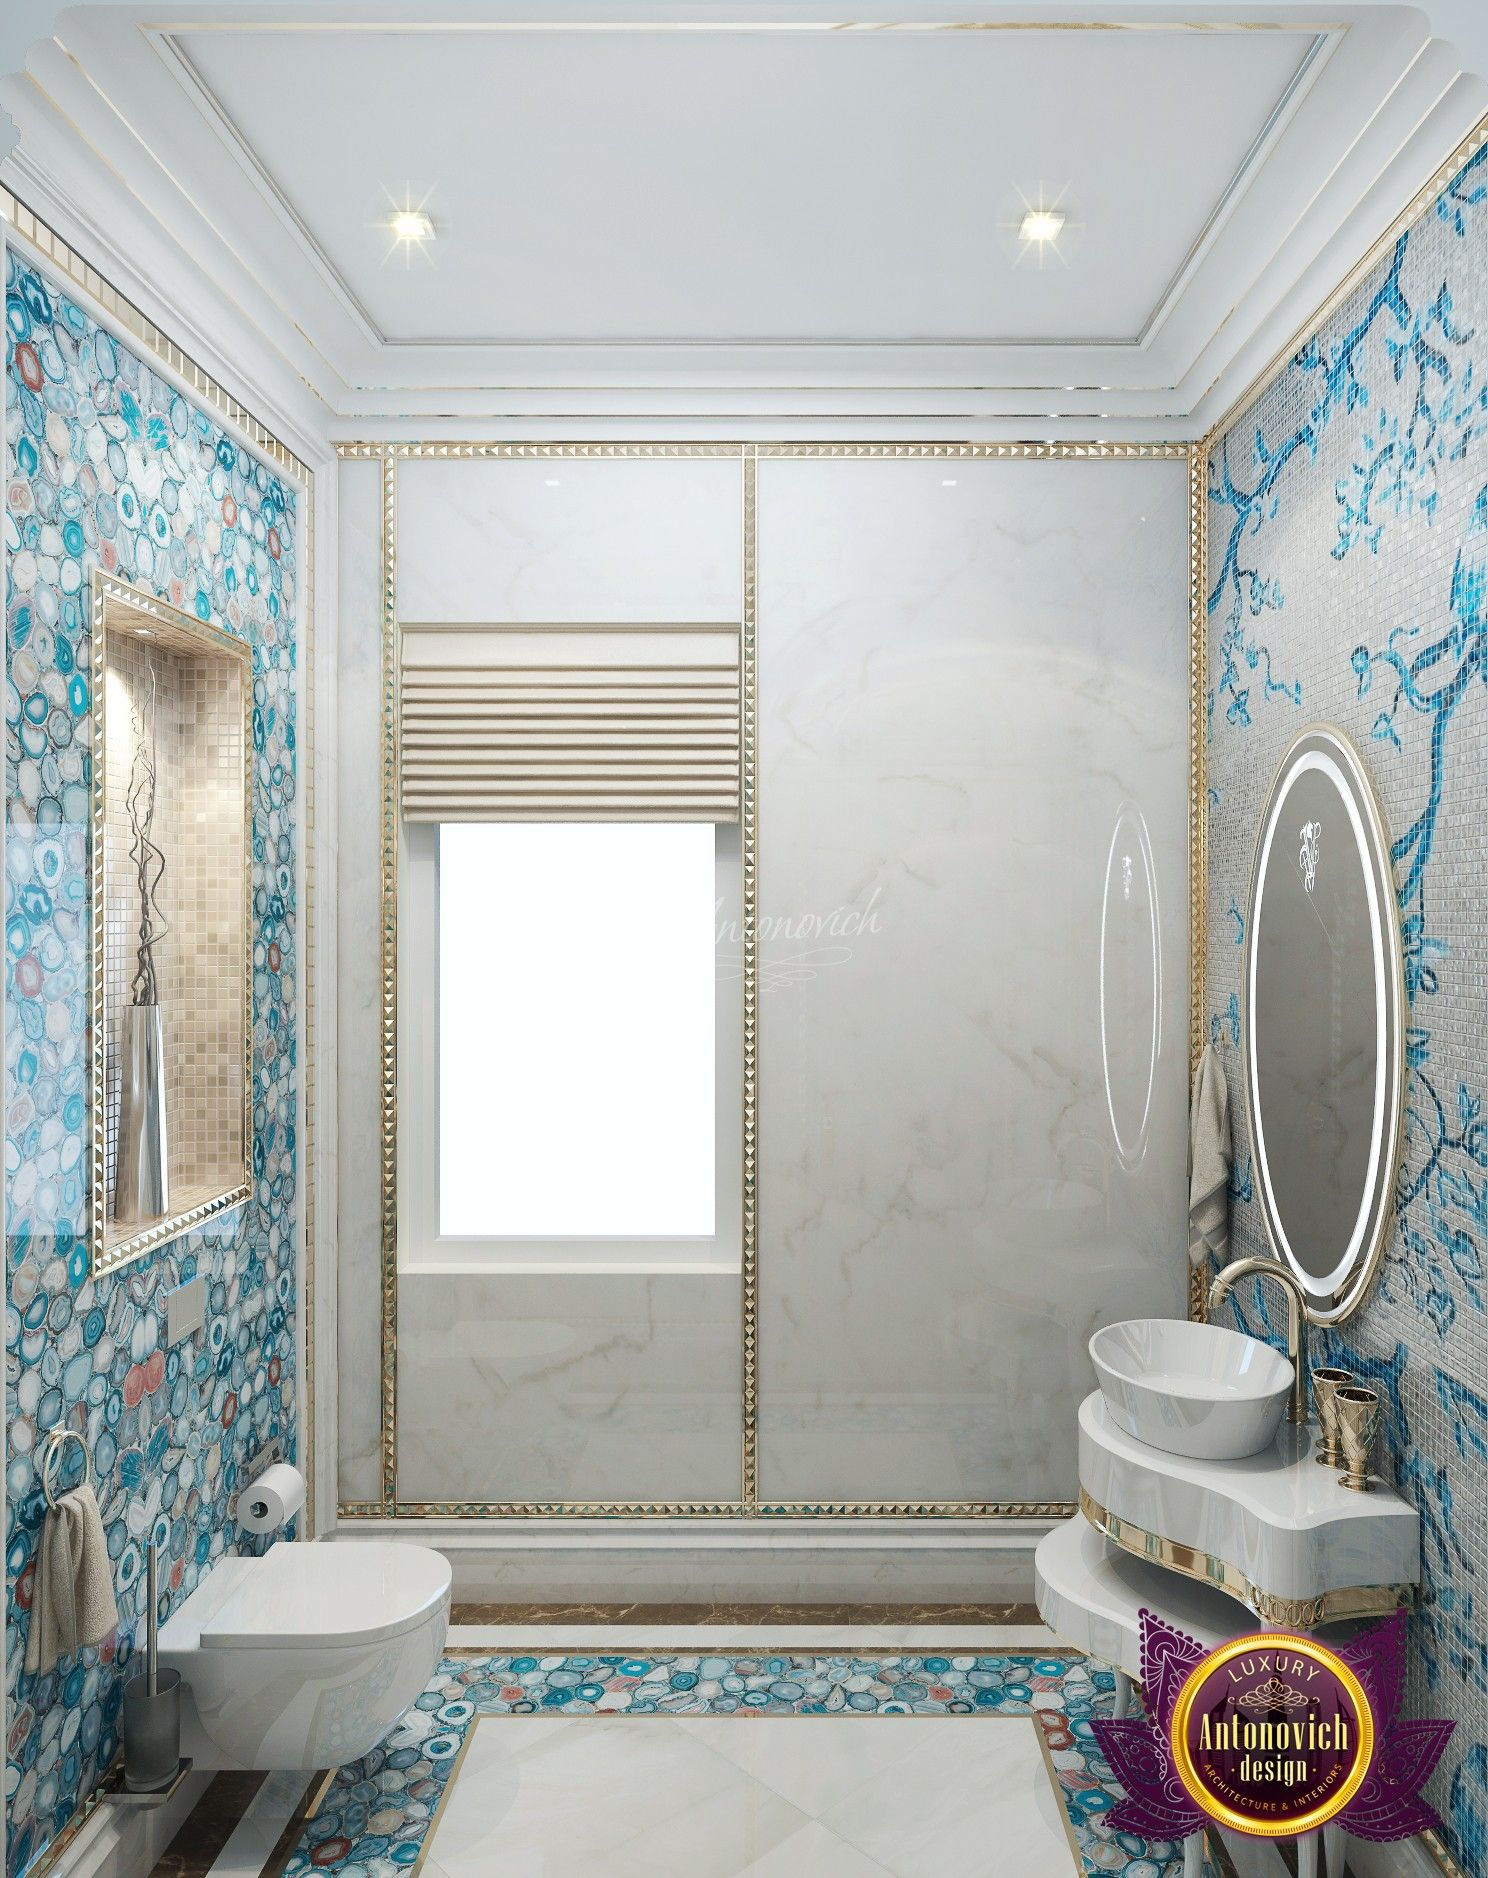 Unusual bathroom design | What We Like From You Guys! | Pinterest ...